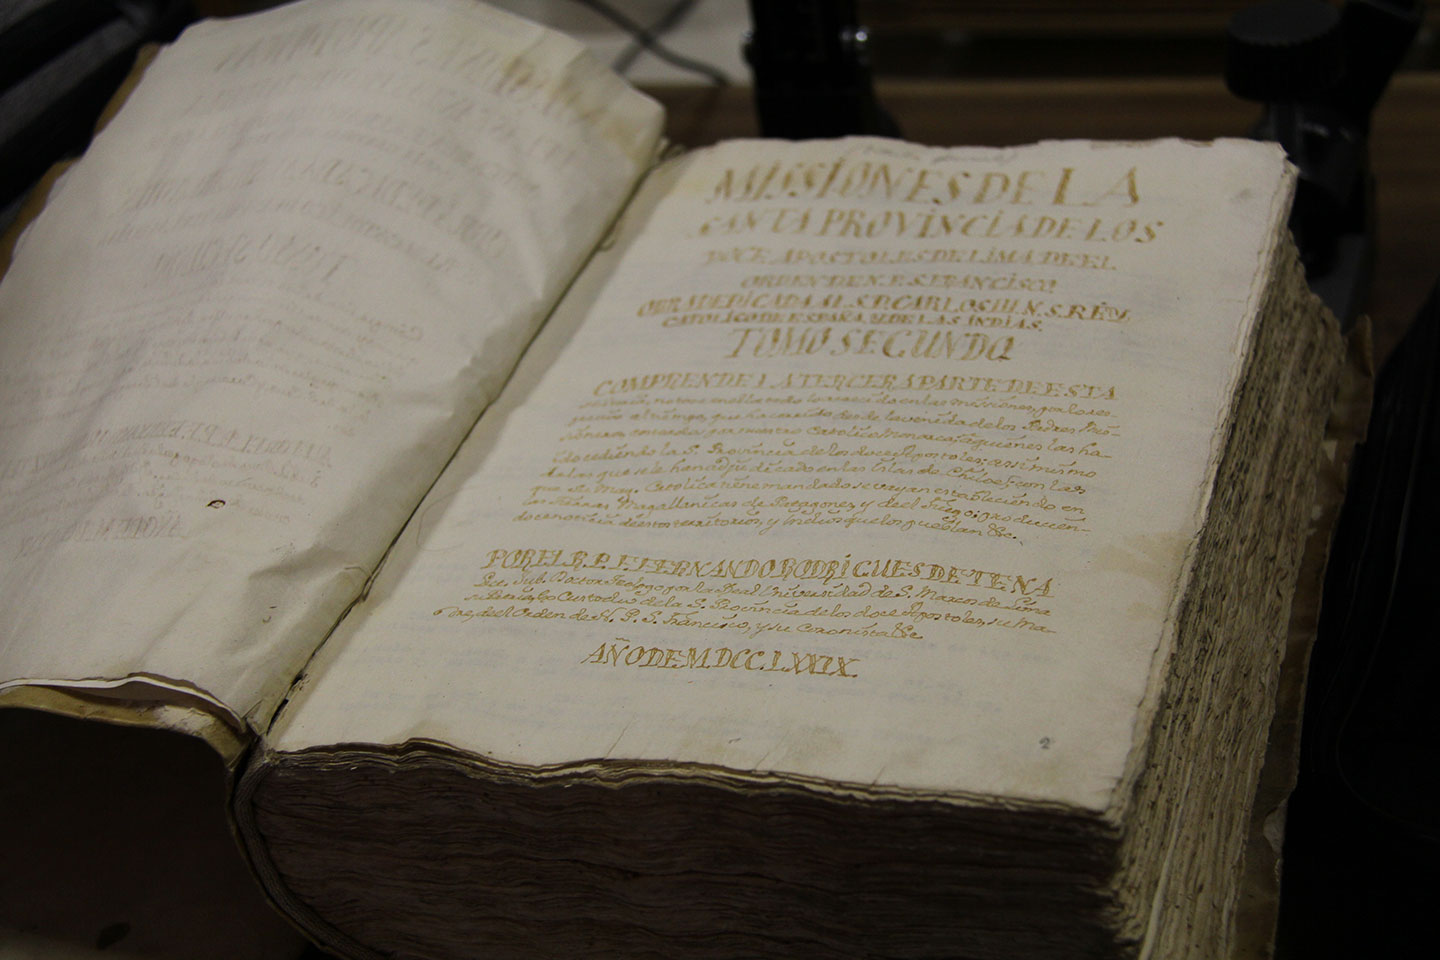 First pages of the register of Franciscan Missions (M41).